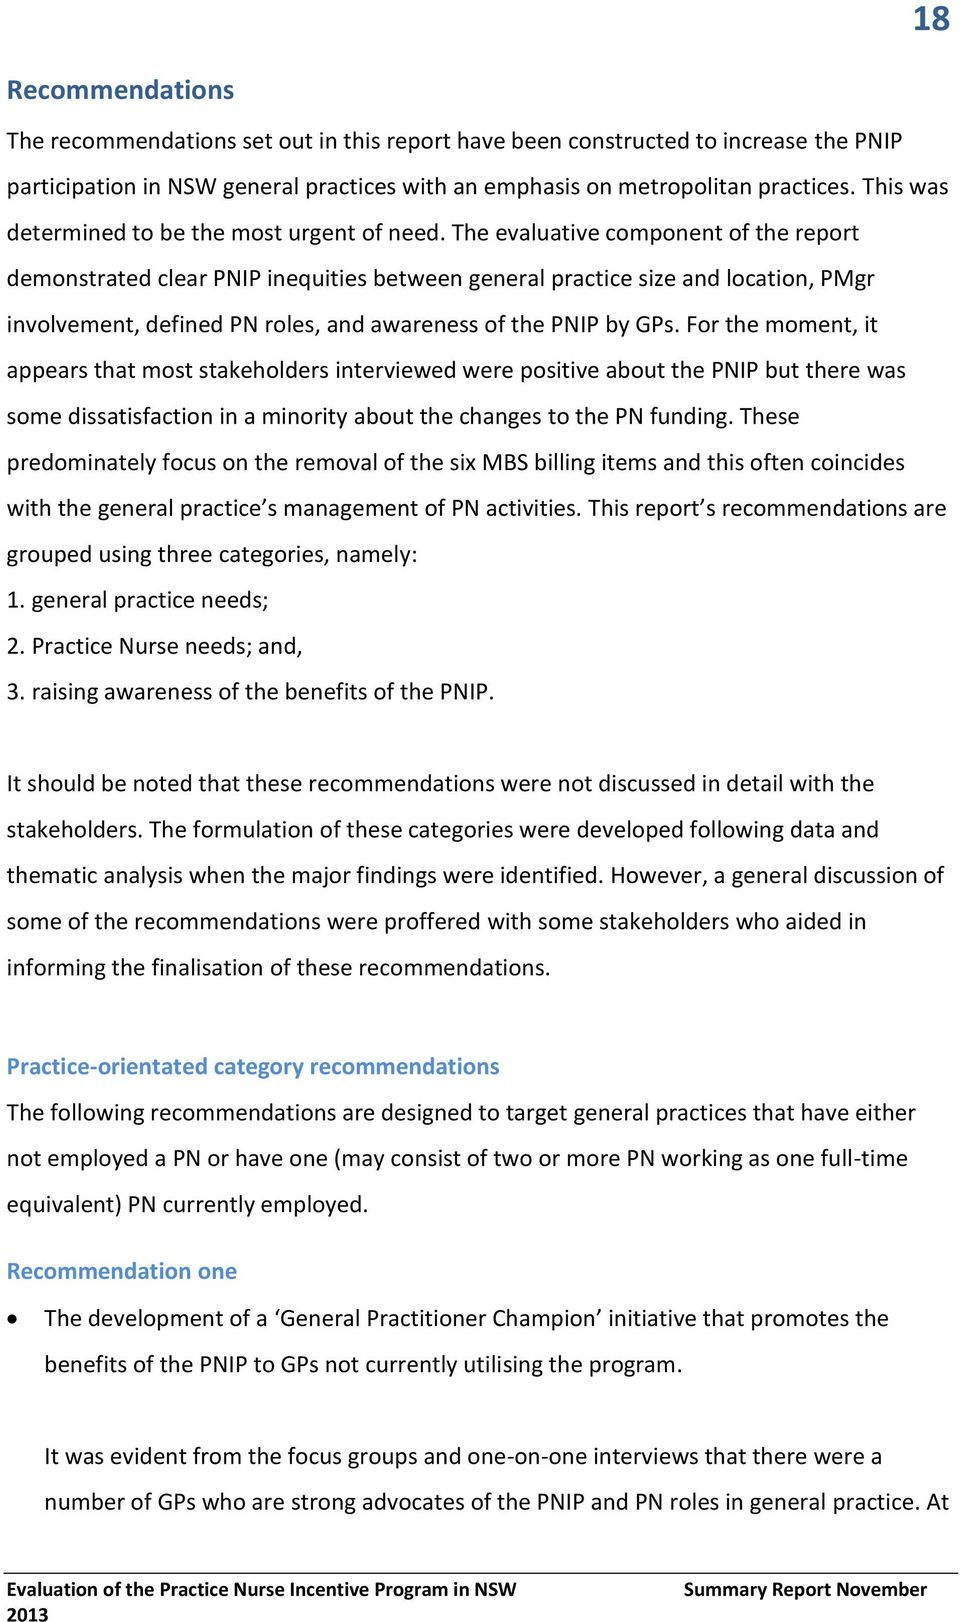 The evaluative component of the report demonstrated clear PNIP inequities between general practice size and location, PMgr involvement, defined PN roles, and awareness of the PNIP by GPs.